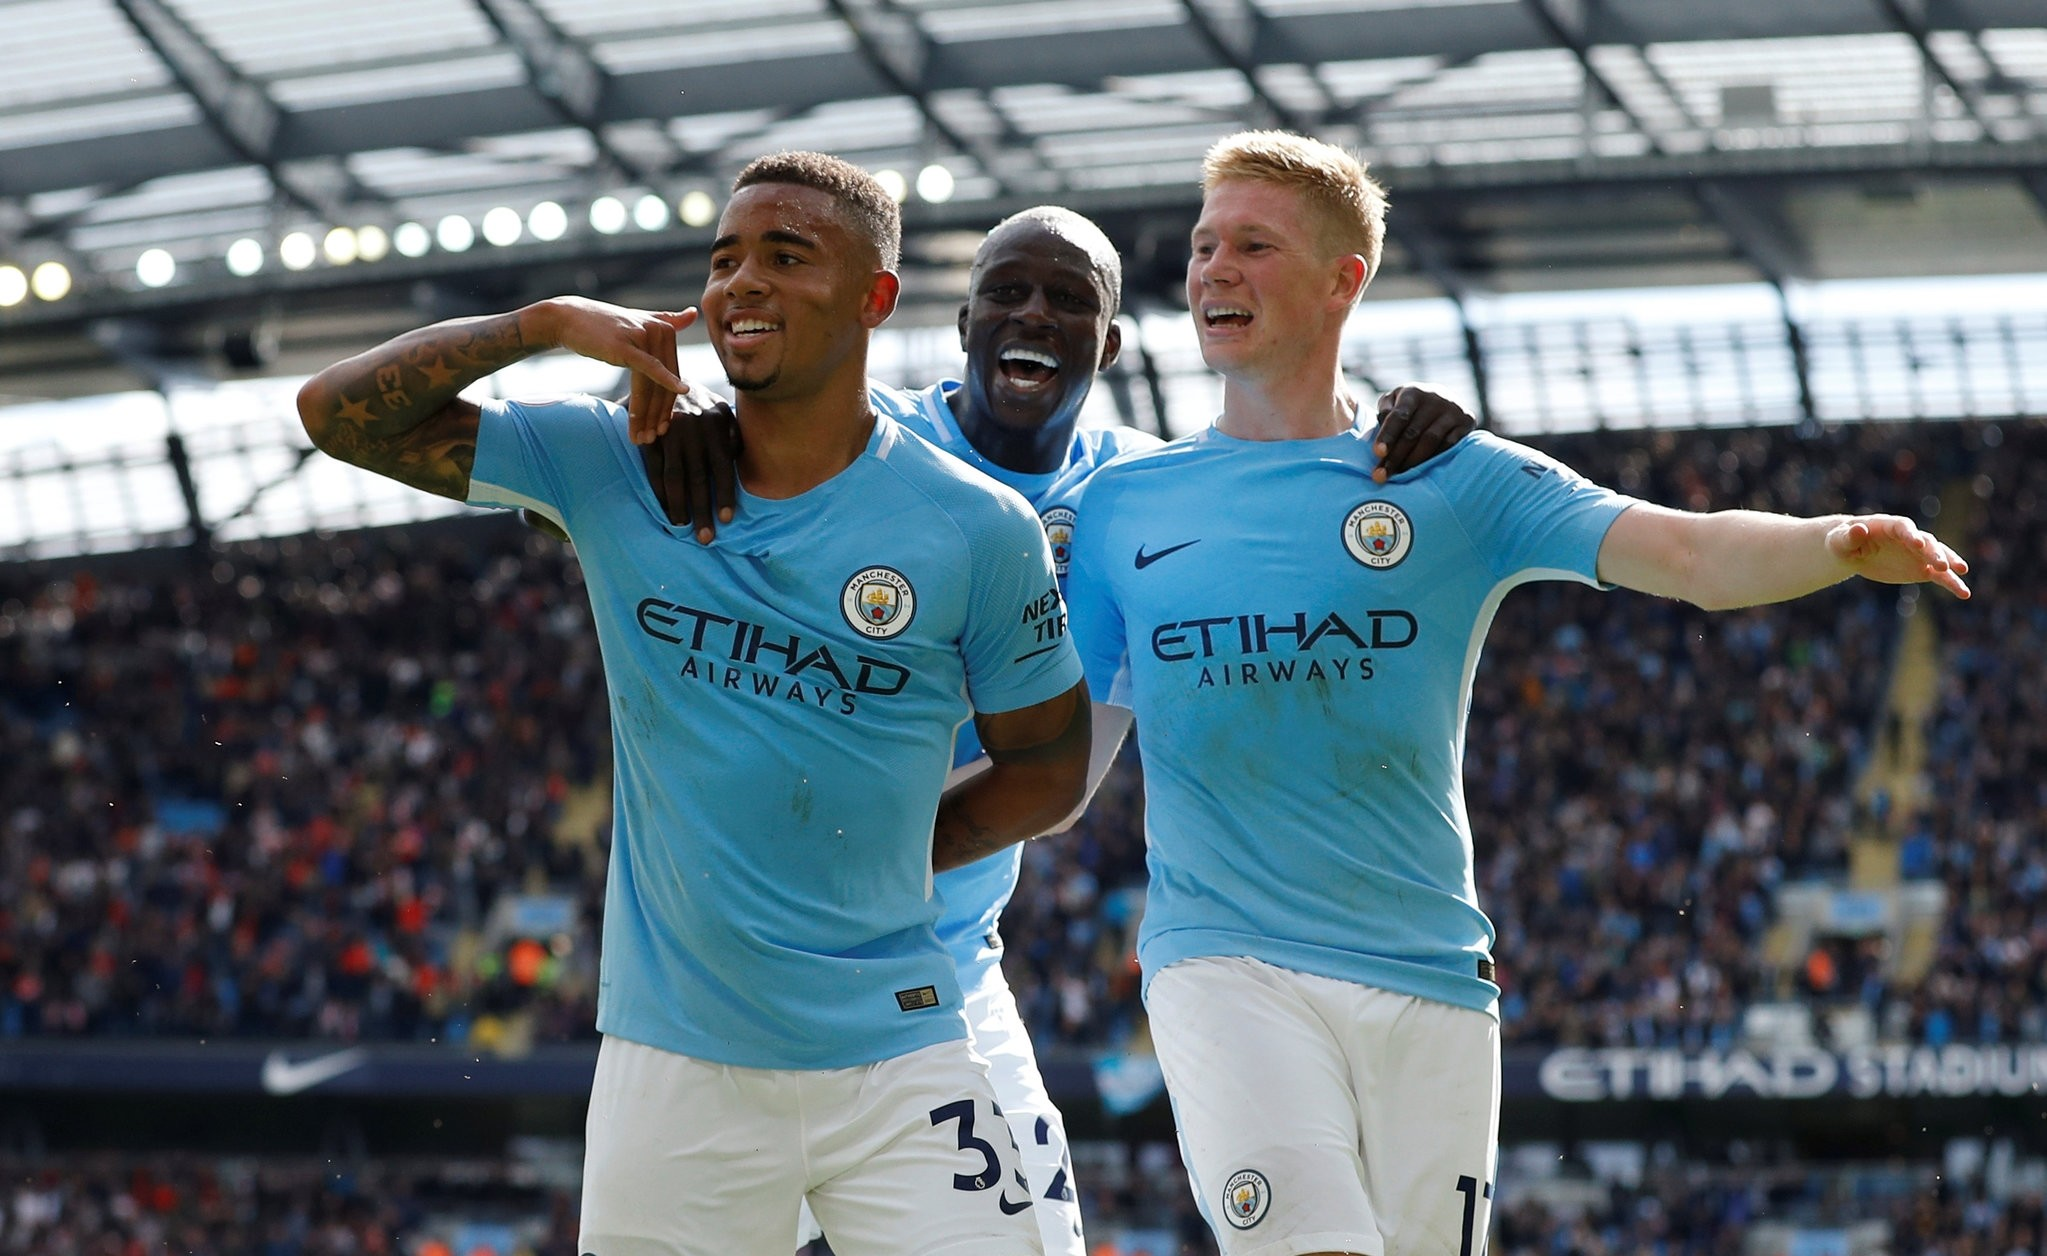 Manchester City's Gabriel Jesus celebrates scoring their second goal with Benjamin Mendy and Kevin De Bruyne. (REUTERS Photo)